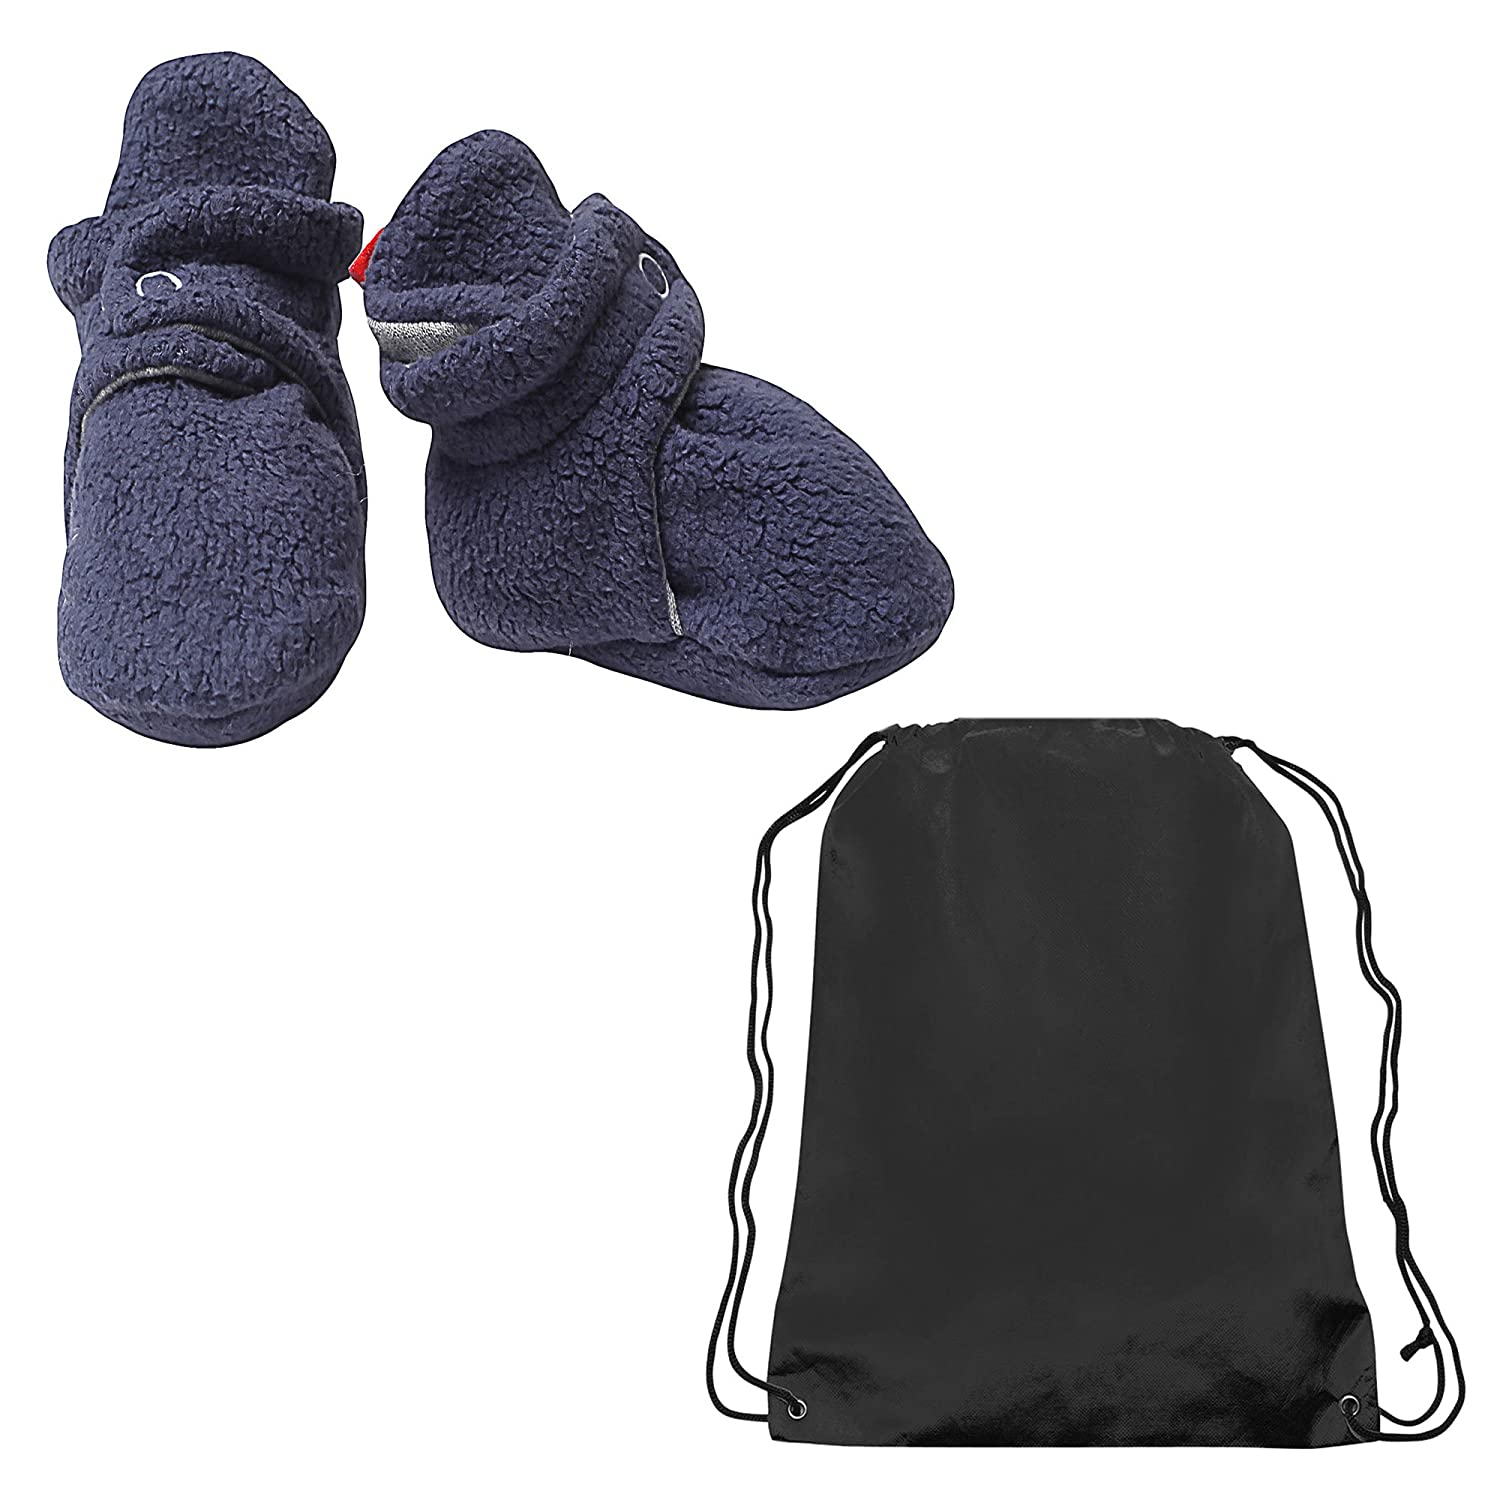 Zutano Unisex-Baby Newborn Cozie Fleece Bootie and Drawstring Athletic Bag